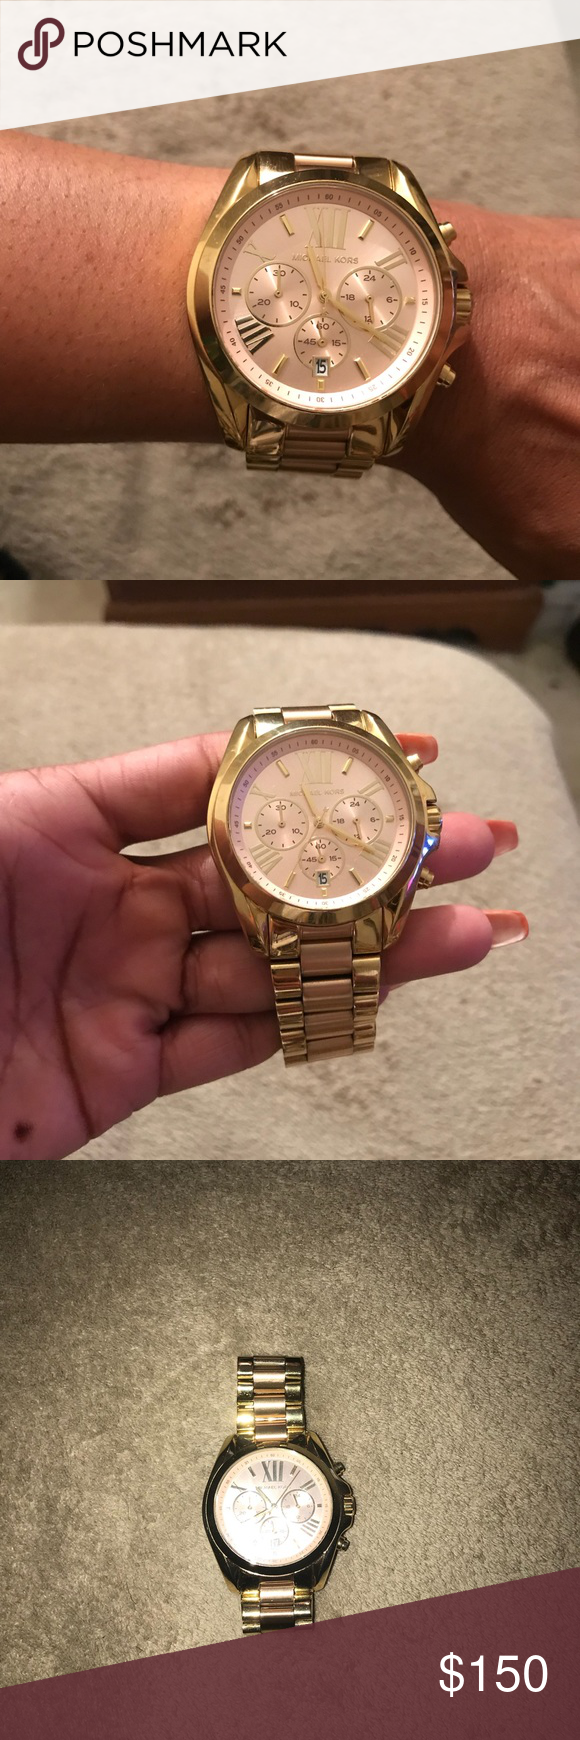 f05f09cefbe8 Michael Kors Chronograph Bradshaw Two-Tone Watch Two-Tone (Gold Rose Gold)  Stainless Steel Bracelet Watch 43MM MK6359. Original Packaging and Links.  KORS ...